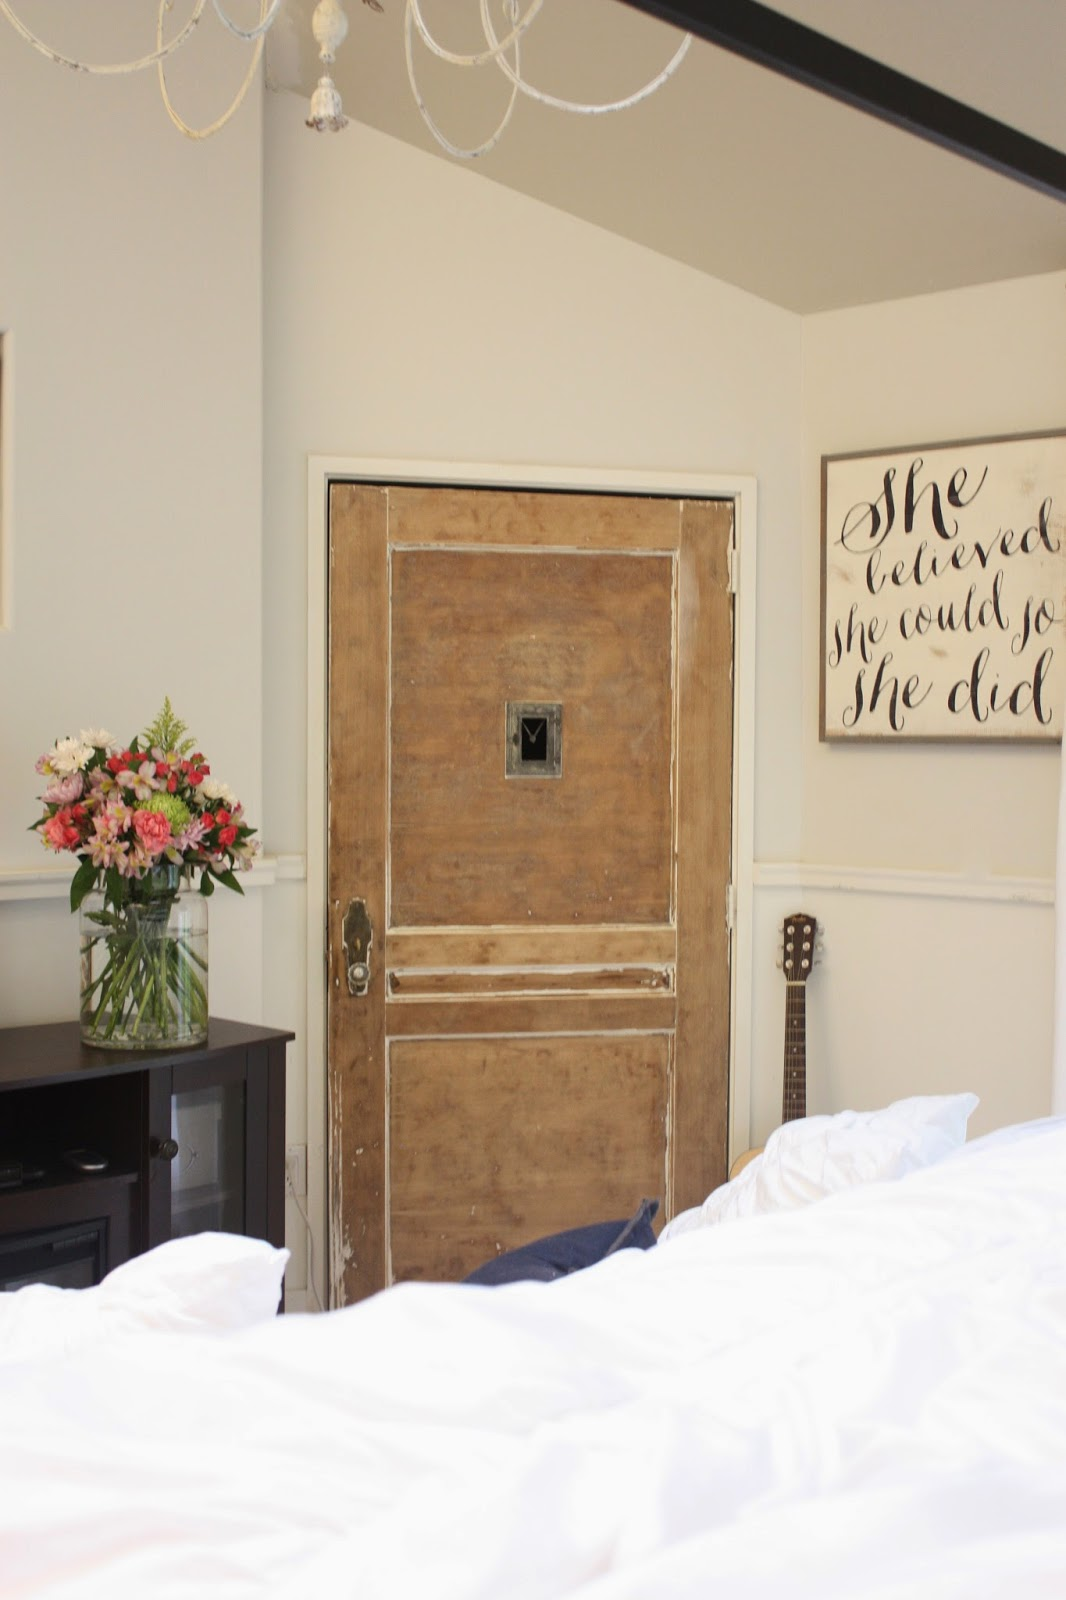 My sweet savannah painting interior doors black - I Stripped All The Paint Off Her Antique Closet Door And Left It As Is